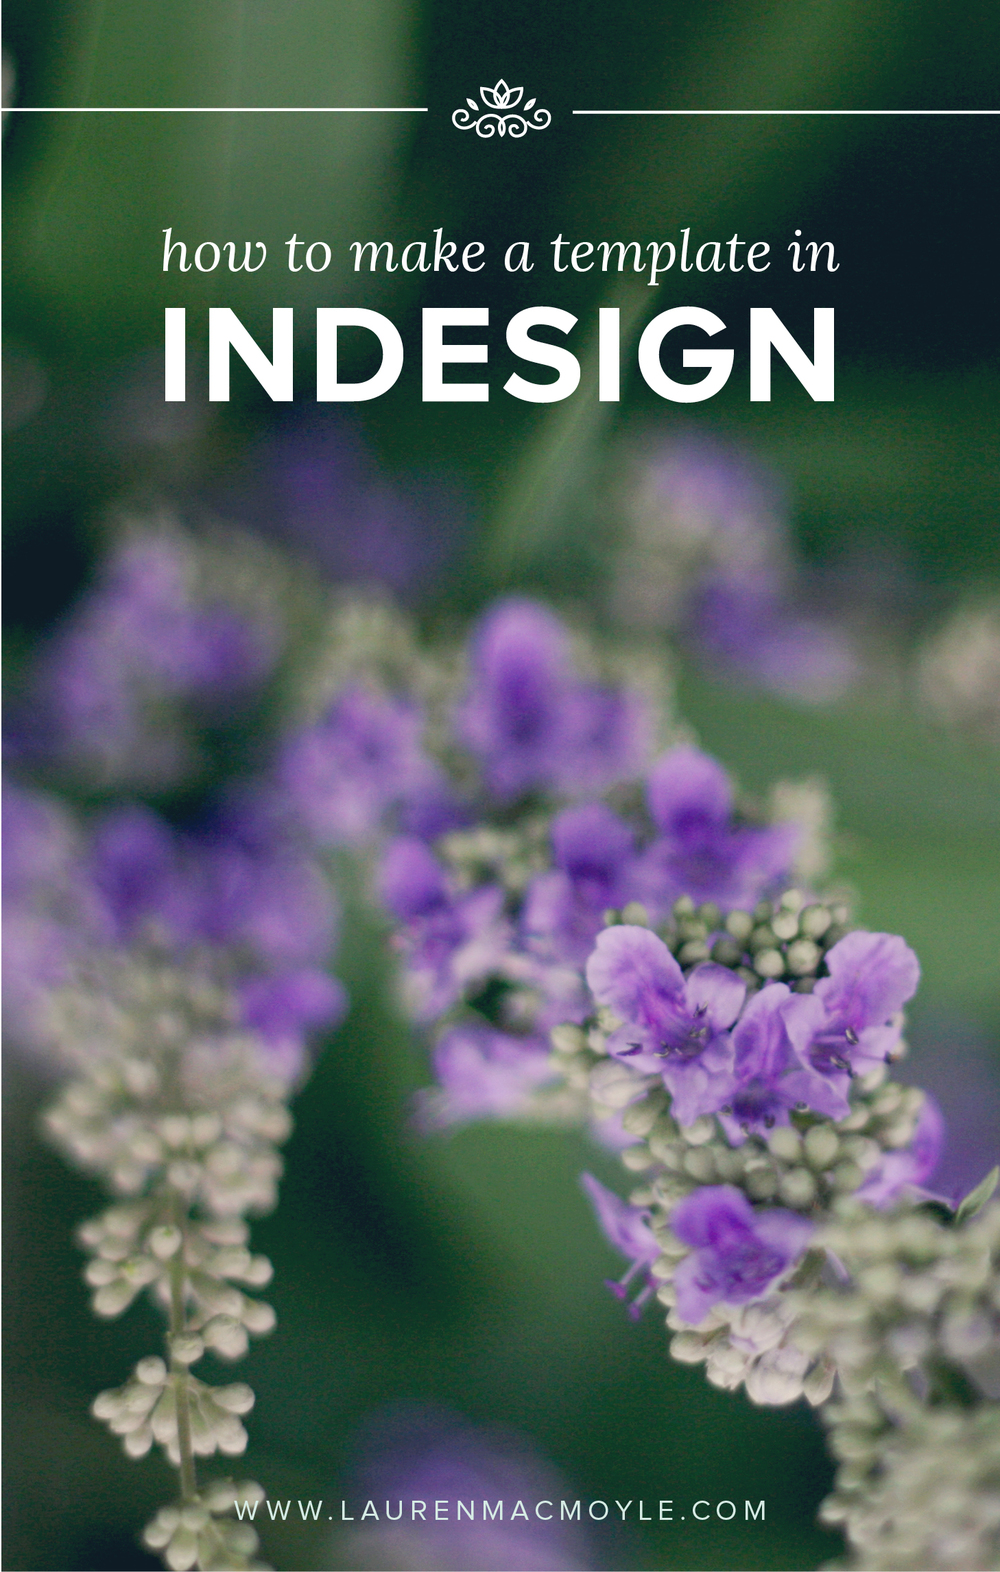 How to Make a Template in Adobe InDesign | Lauren MacMoyle | Graphic Design